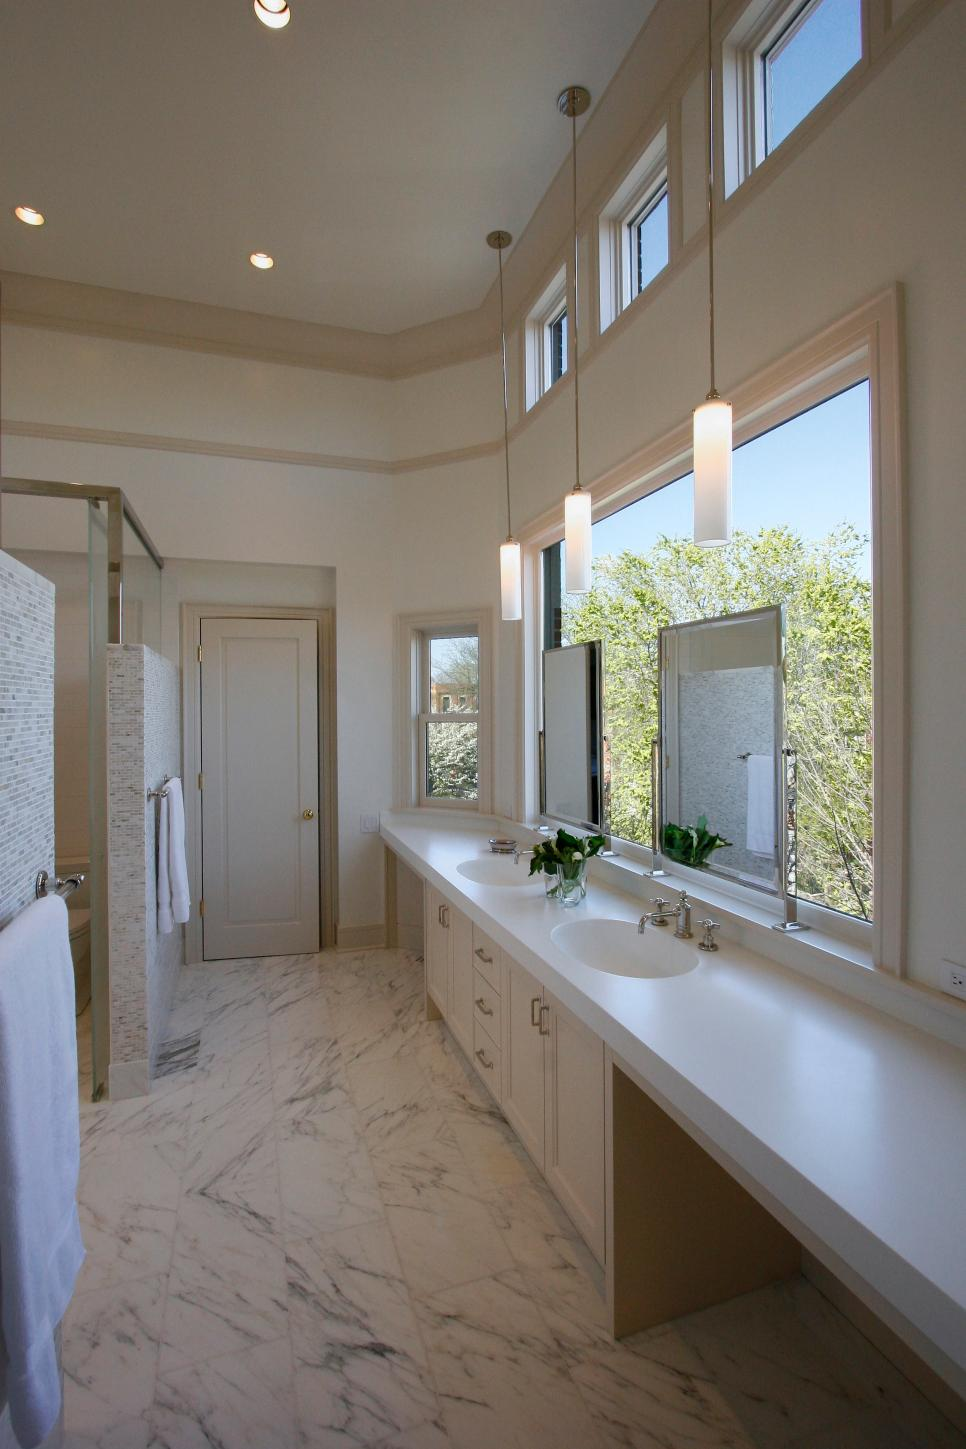 Transitional Neutral Double Vanity Bathroom With Marble Floors